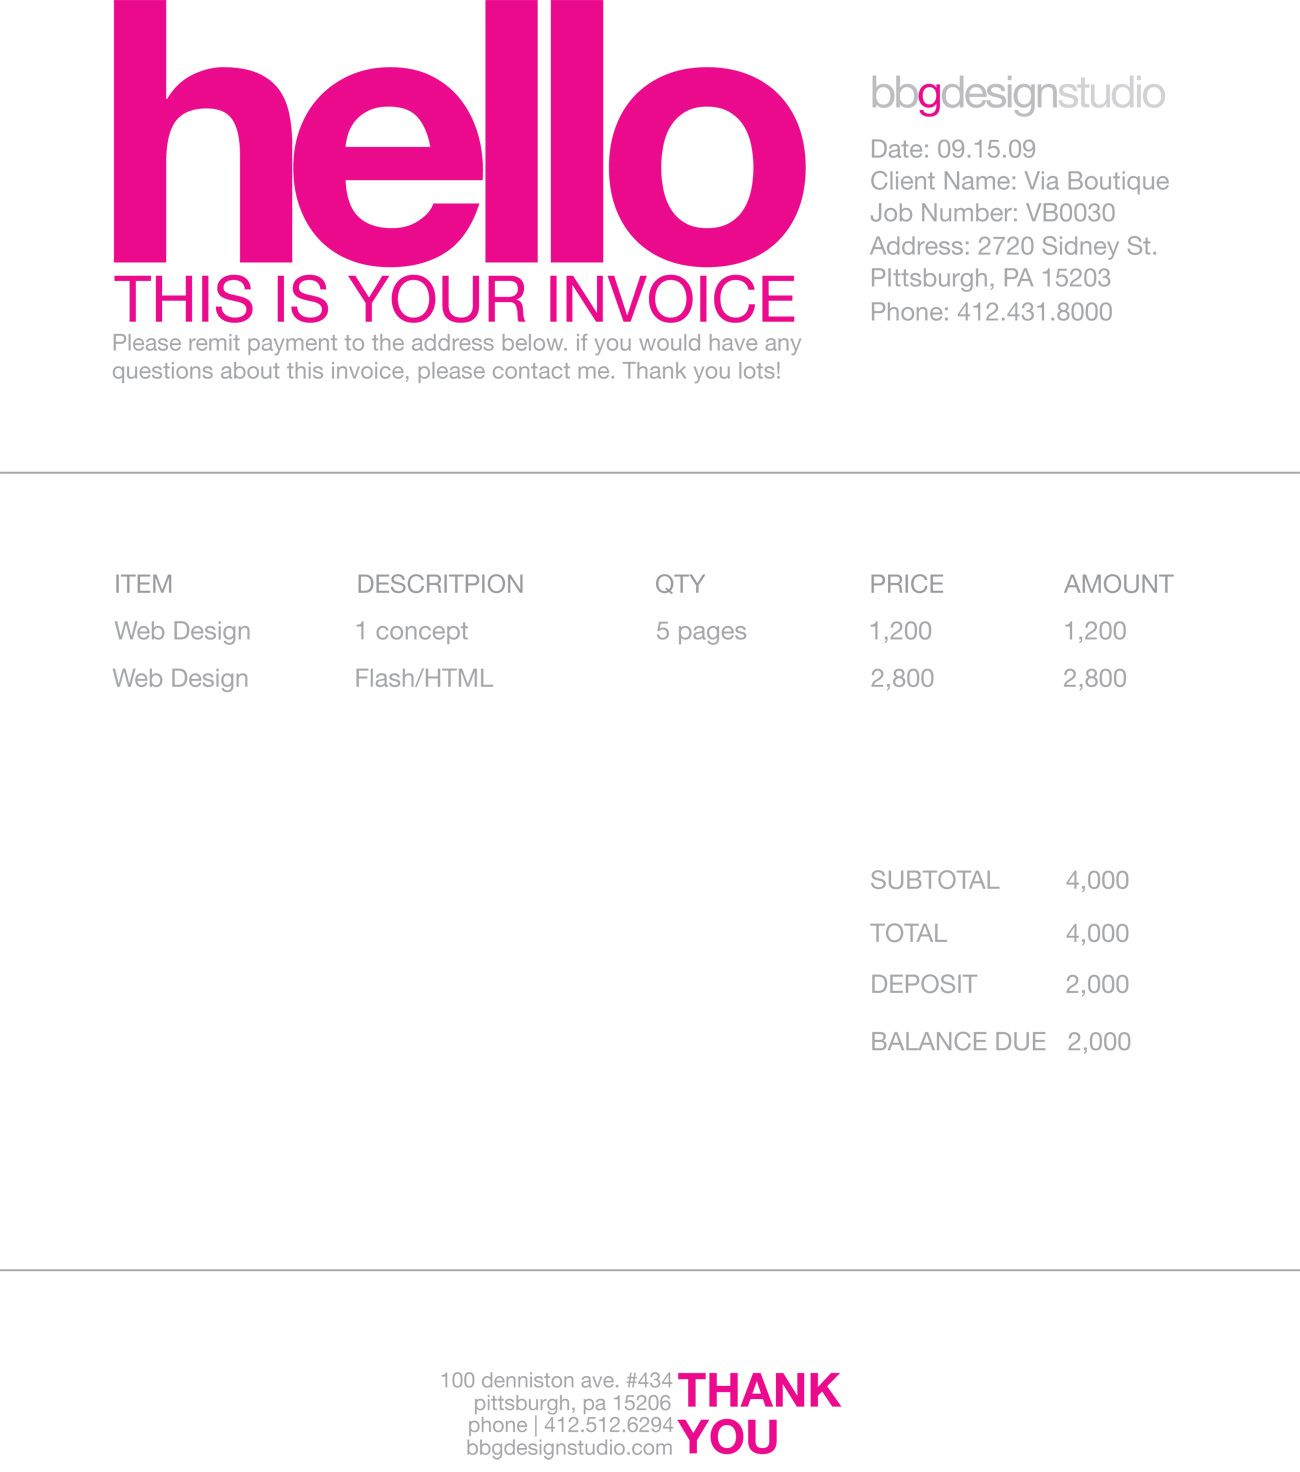 Aaaaeroincus  Gorgeous  Images About Invoice Design On Pinterest With Foxy Jeep Invoice Pricing Besides Invoice Photography Furthermore Bay Area Fastrak Invoice With Amazing Email An Invoice Also Windows Invoice Template In Addition Simple Invoices Templates And Google Doc Template Invoice As Well As Free Printable Invoice Template Word Additionally Jeep Invoice From Pinterestcom With Aaaaeroincus  Foxy  Images About Invoice Design On Pinterest With Amazing Jeep Invoice Pricing Besides Invoice Photography Furthermore Bay Area Fastrak Invoice And Gorgeous Email An Invoice Also Windows Invoice Template In Addition Simple Invoices Templates From Pinterestcom